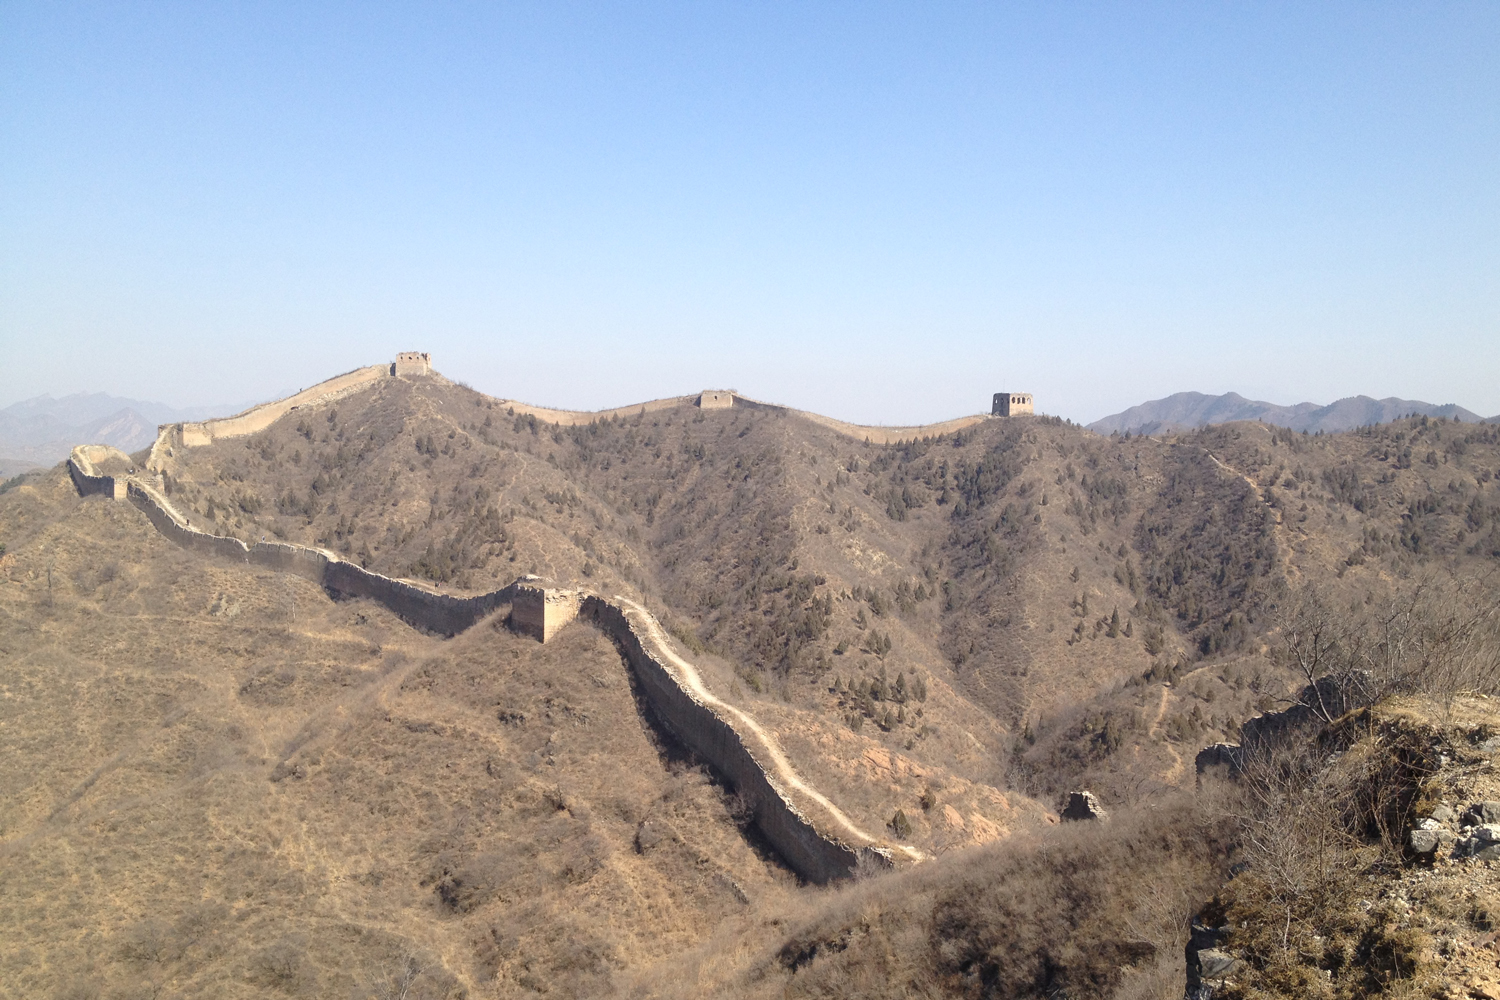 While living in Beijing Heidi was a member of Beijing hikers. Many sundays she spent hiking on the great wall of China.